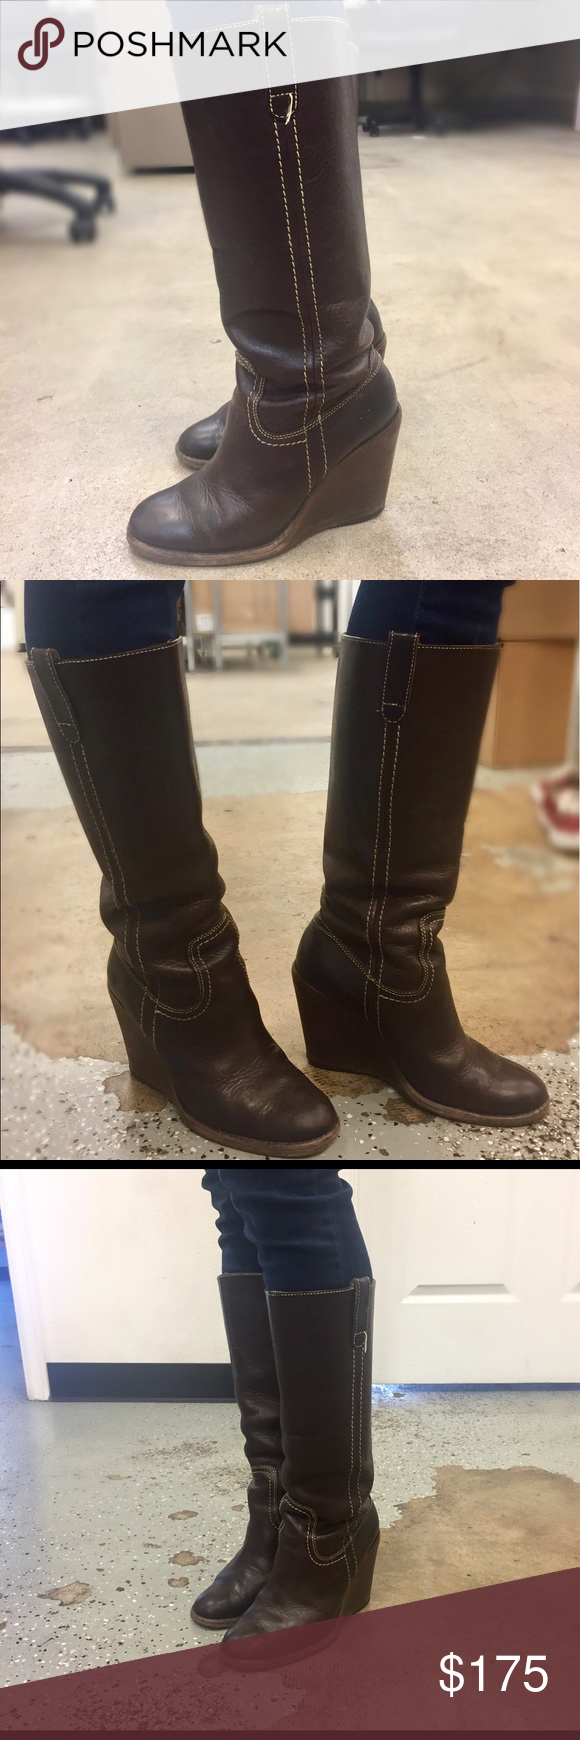 1f3430d5431d Frye- Brown Leather Wedge Caroline Campus Boots These Frye Caroline Campus  brown leather wedge boots